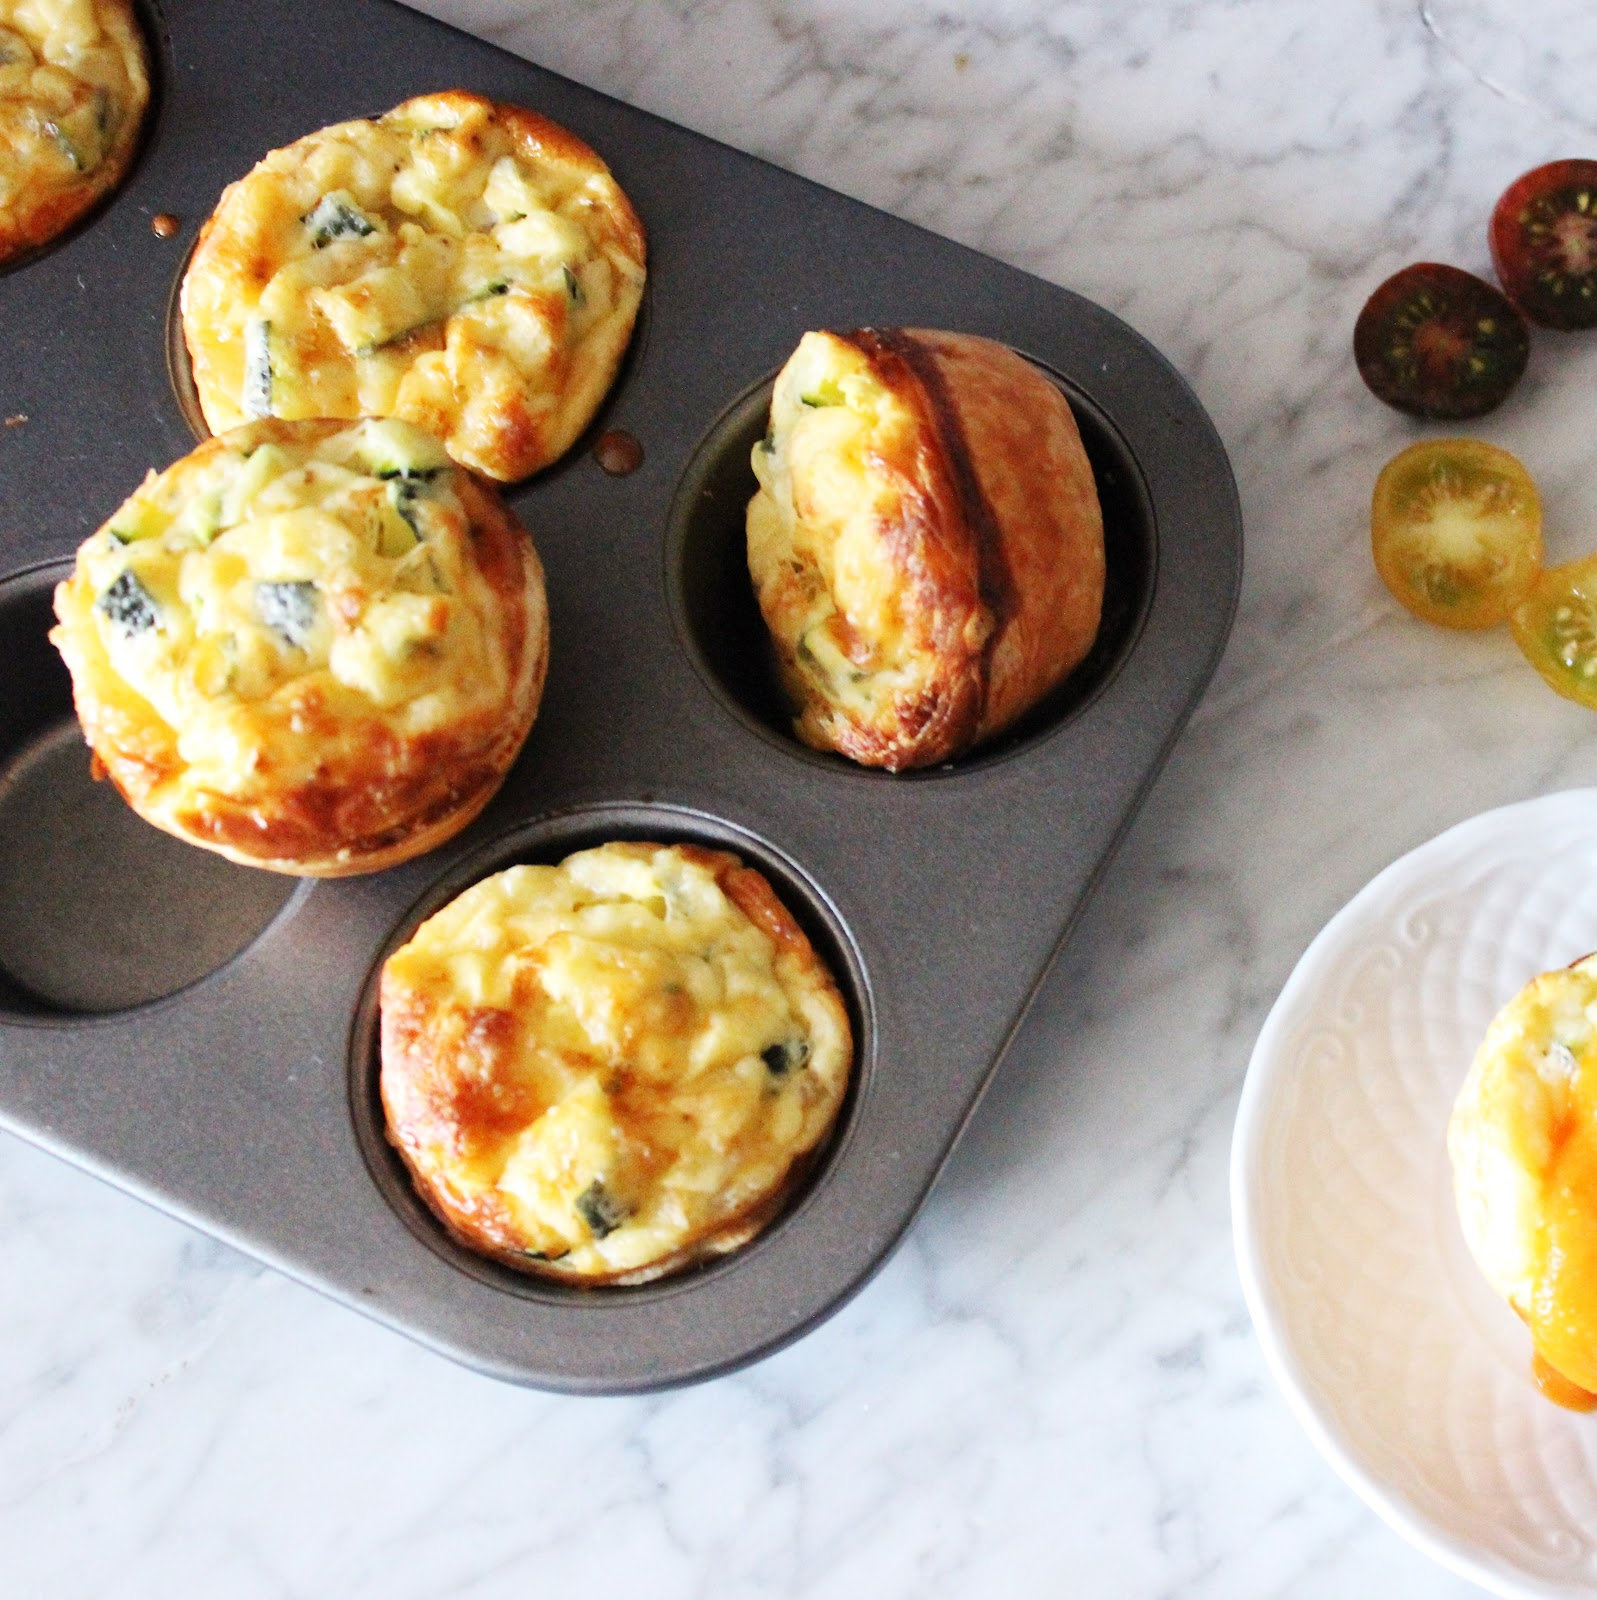 MINI QUICHES DE CALABACÍN